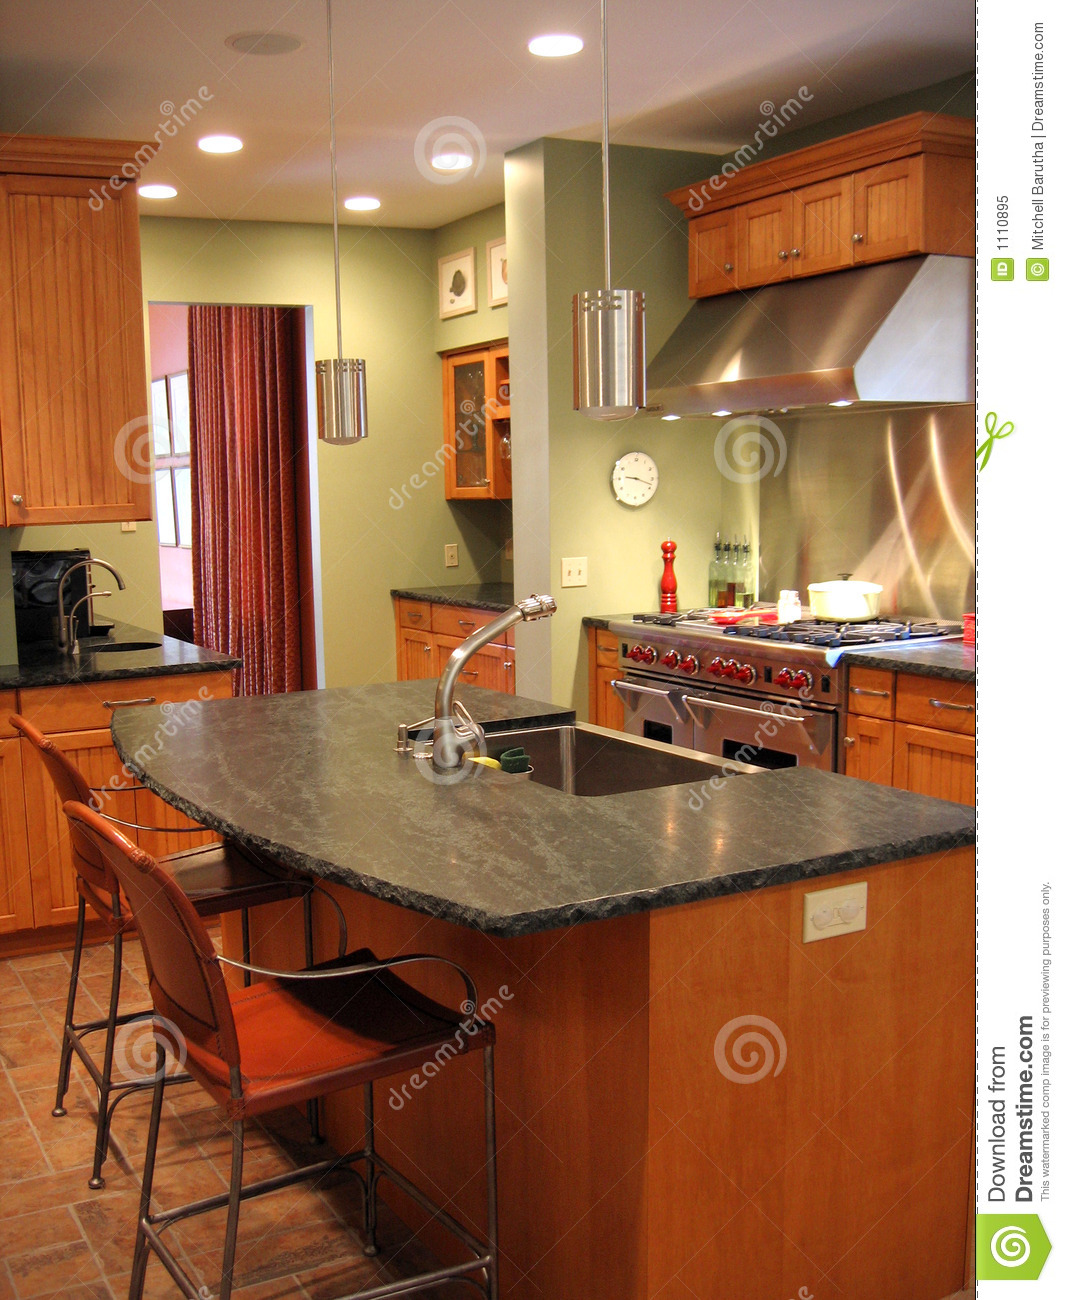 Remodeled Kitchen Royalty Free Stock Photo Image 1110895